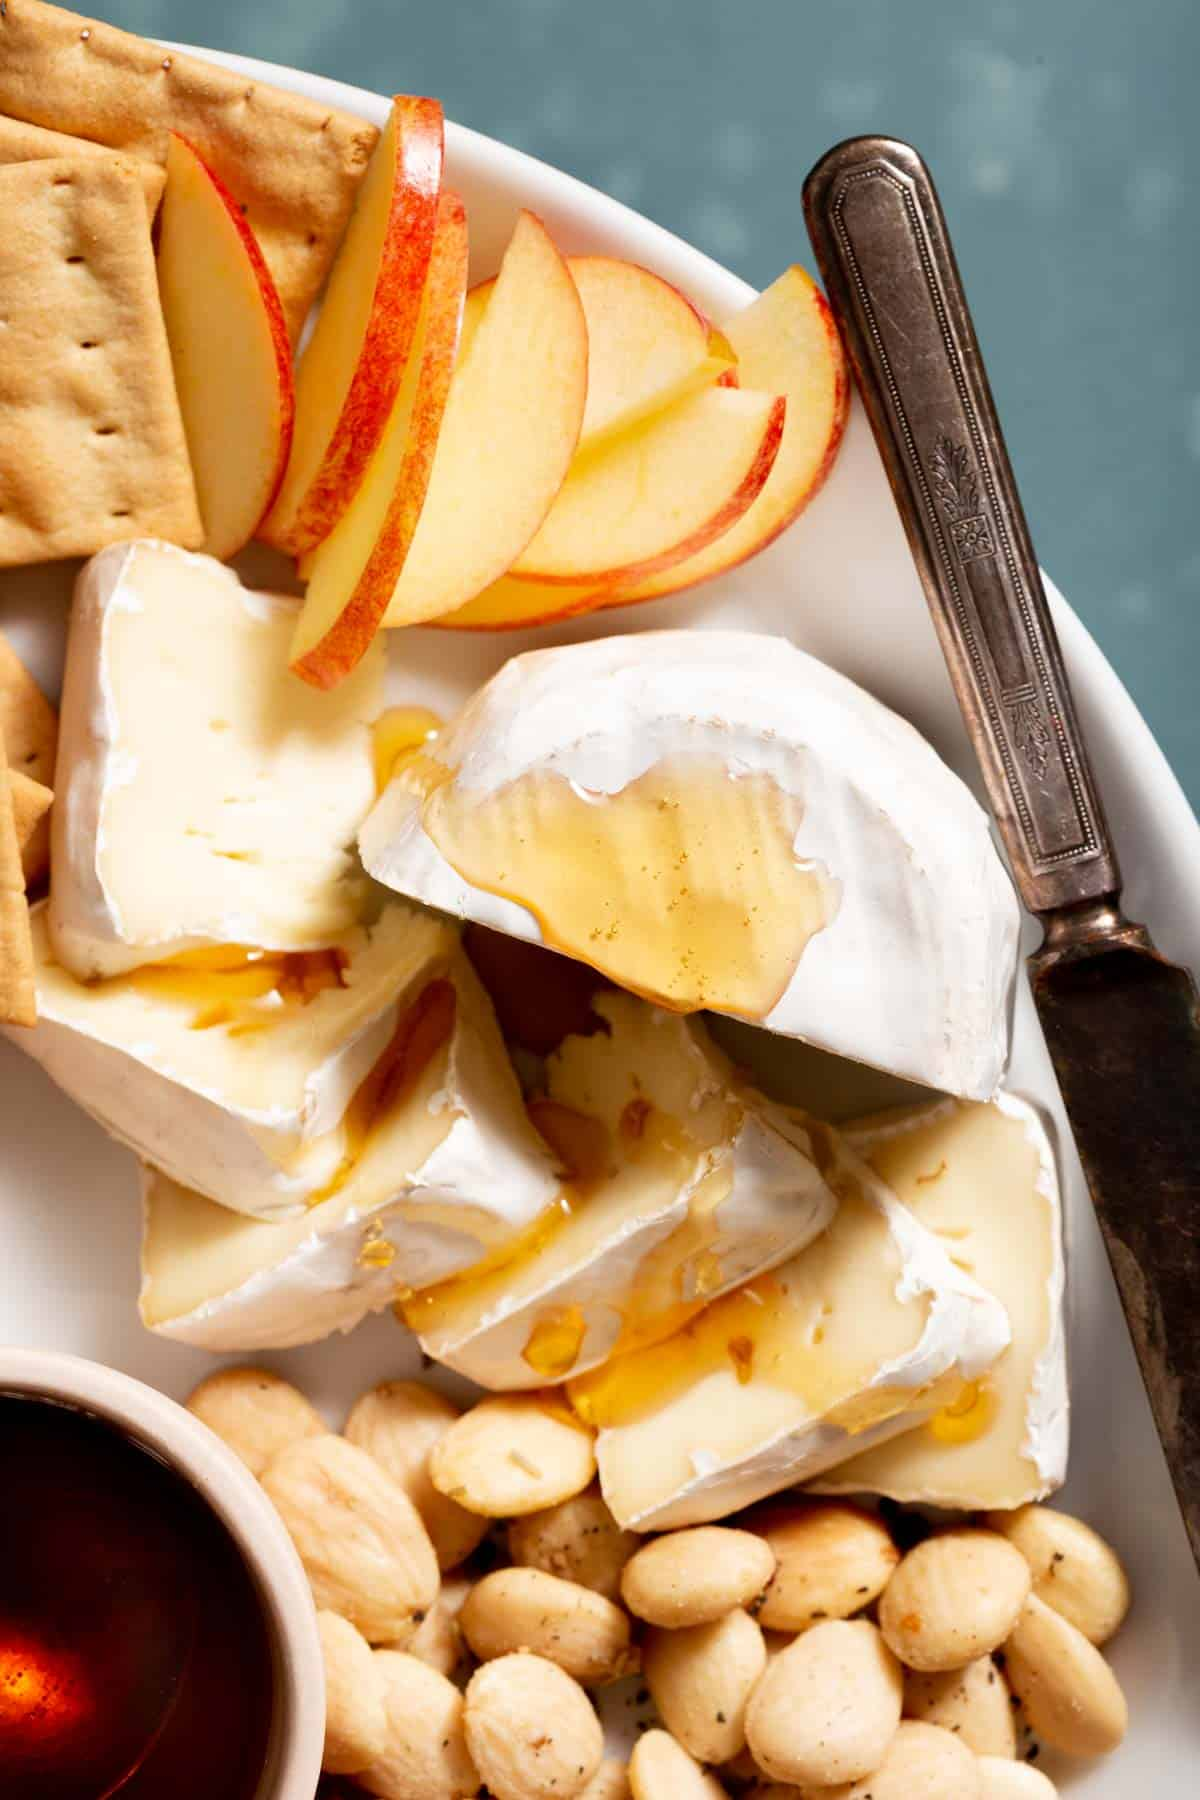 Close up of white cheese with syrup on top, next to sliced apples and nuts.